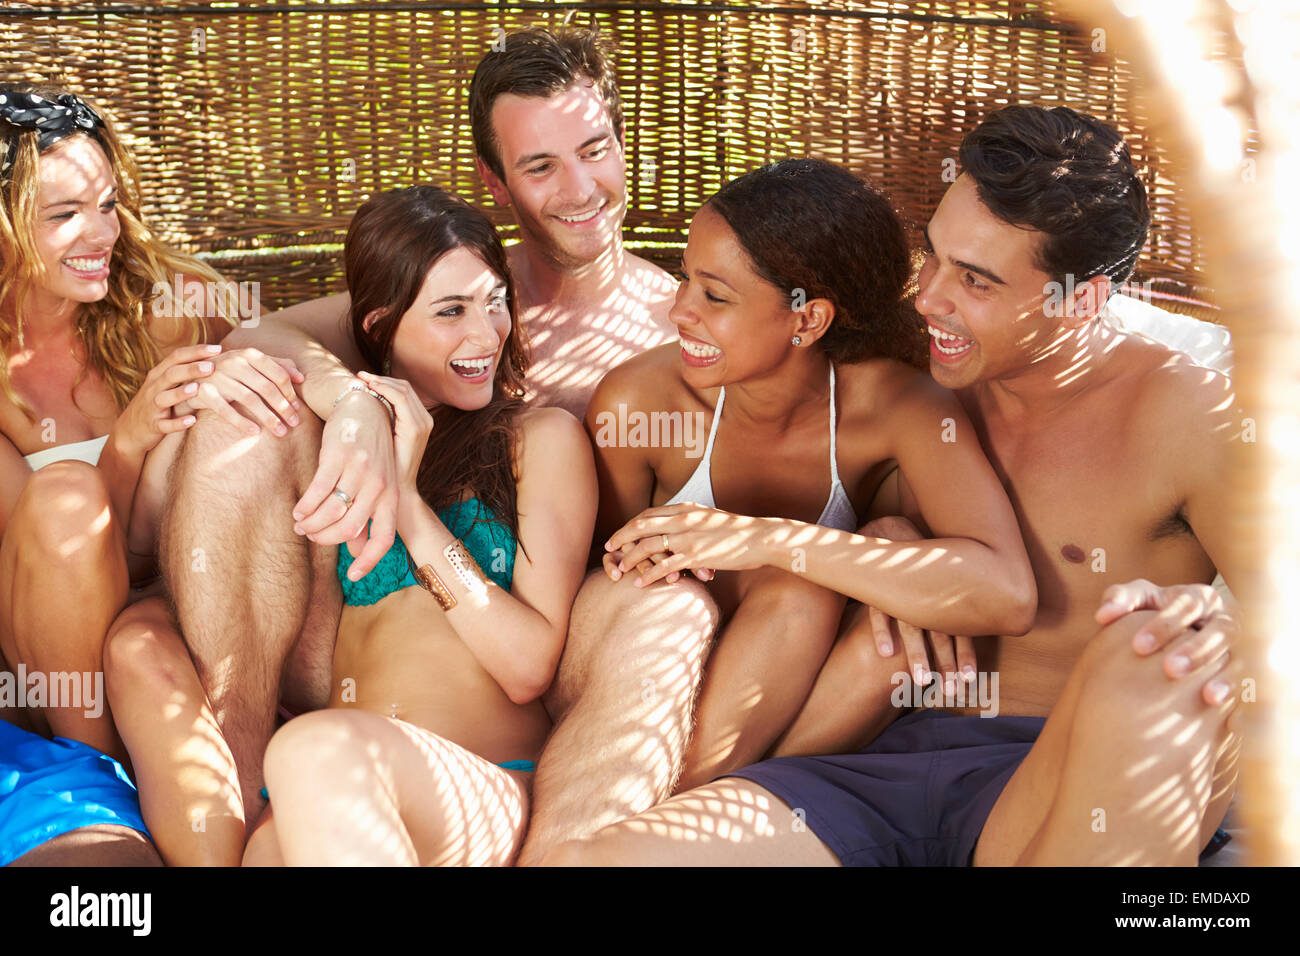 Group Of Friends In Swimwear Relaxing Outdoors Together - Stock Image